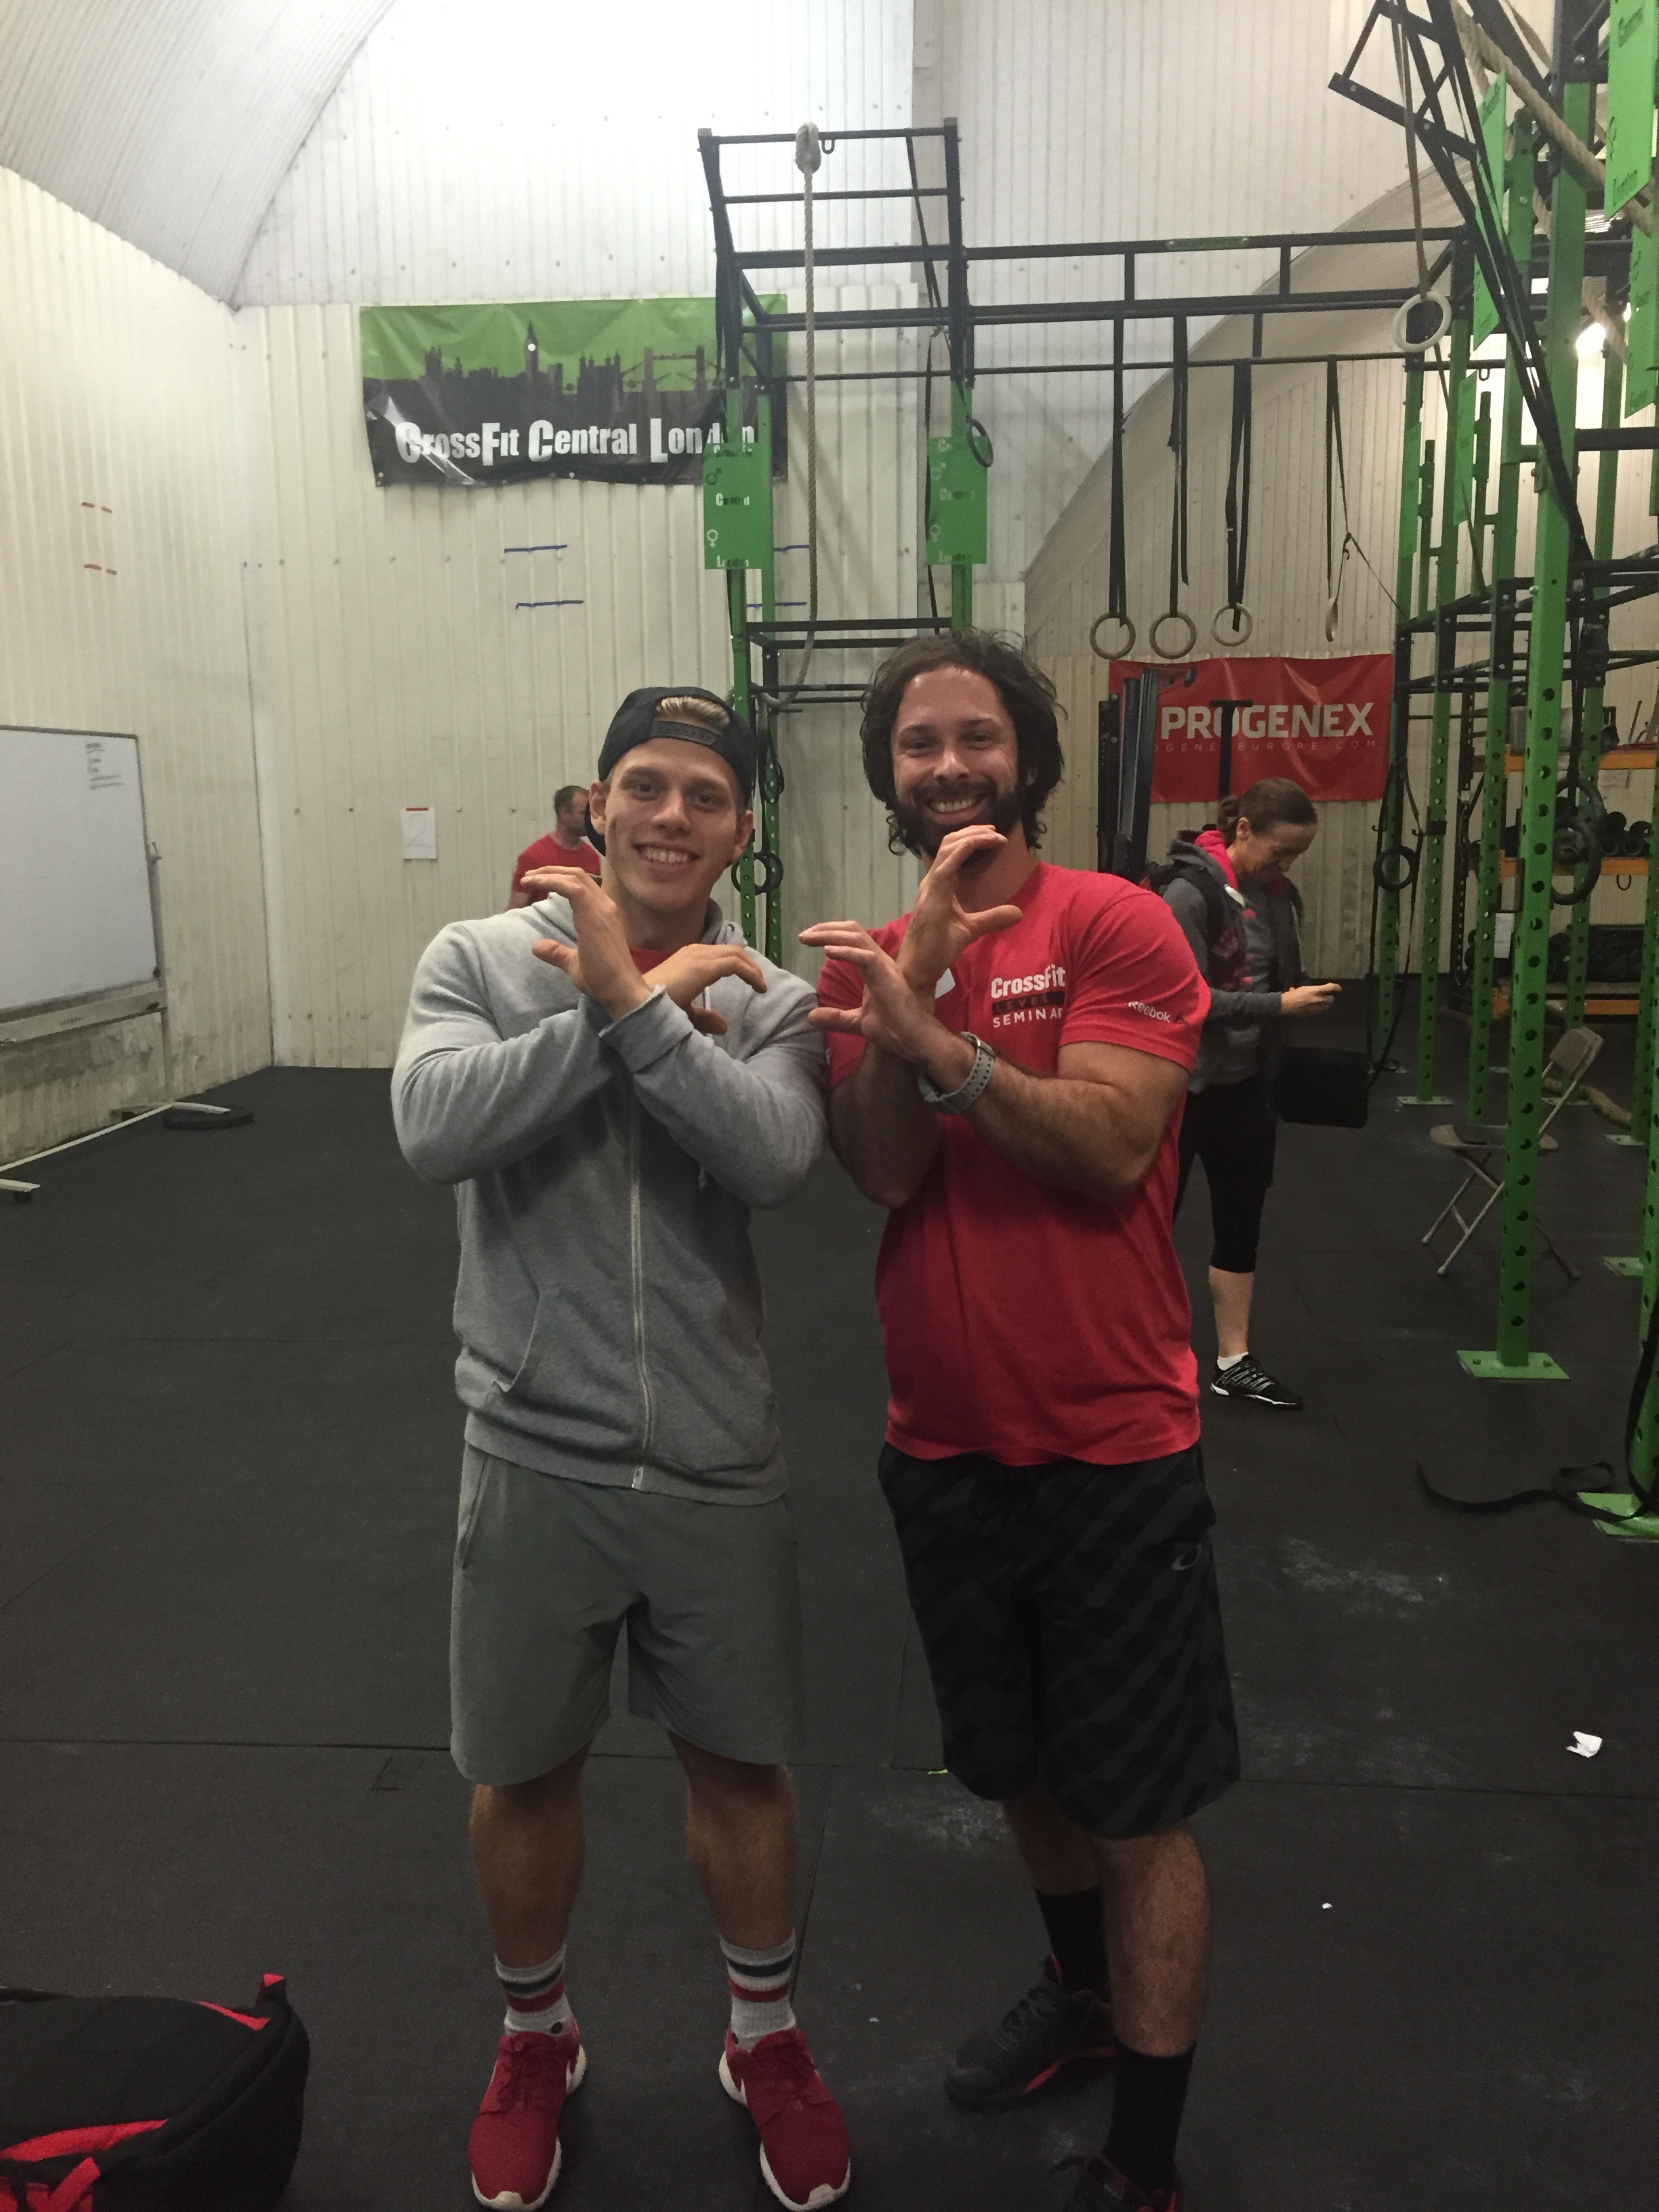 Jonne Koski (9th Fittest Man in the World) wishing he was at Crossfit Cardiff